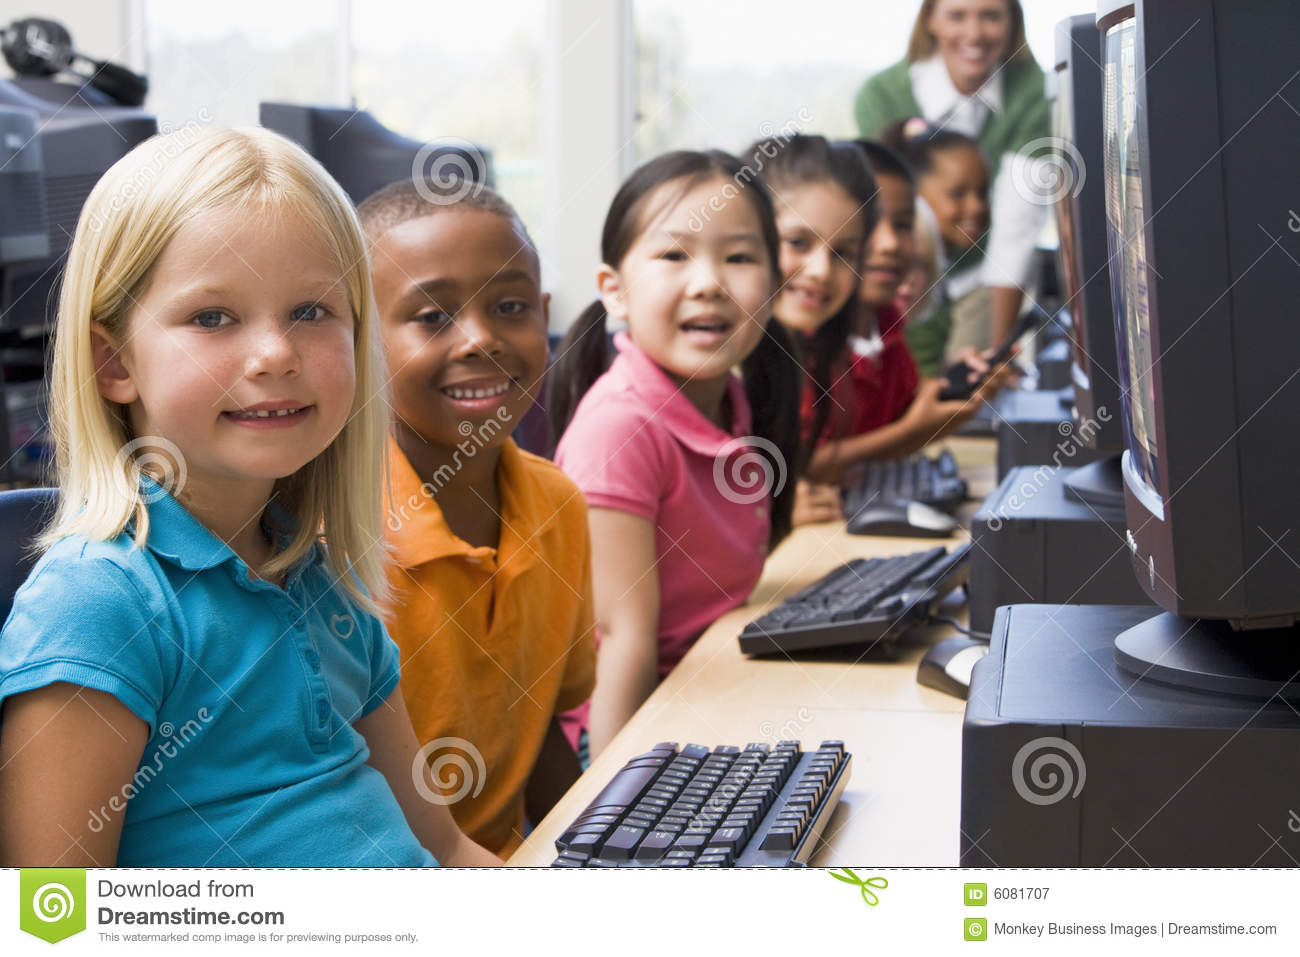 Children learning by using the computers